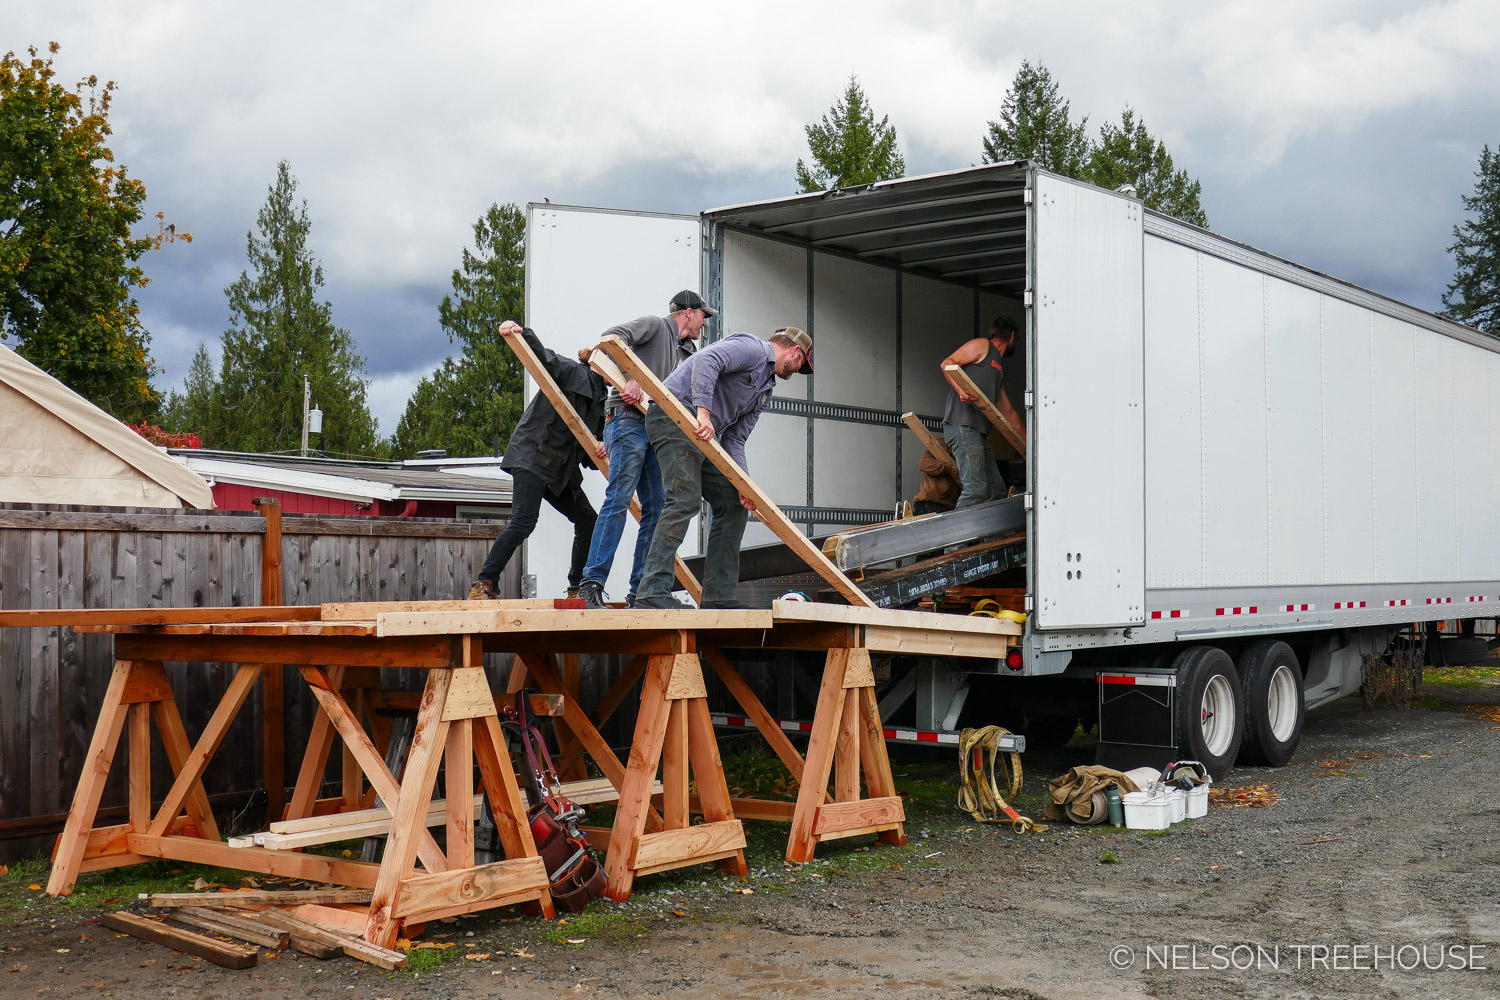 Nelson Treehouse Prefab for Treehouse Utopia - using 2x4's to load metal into truck